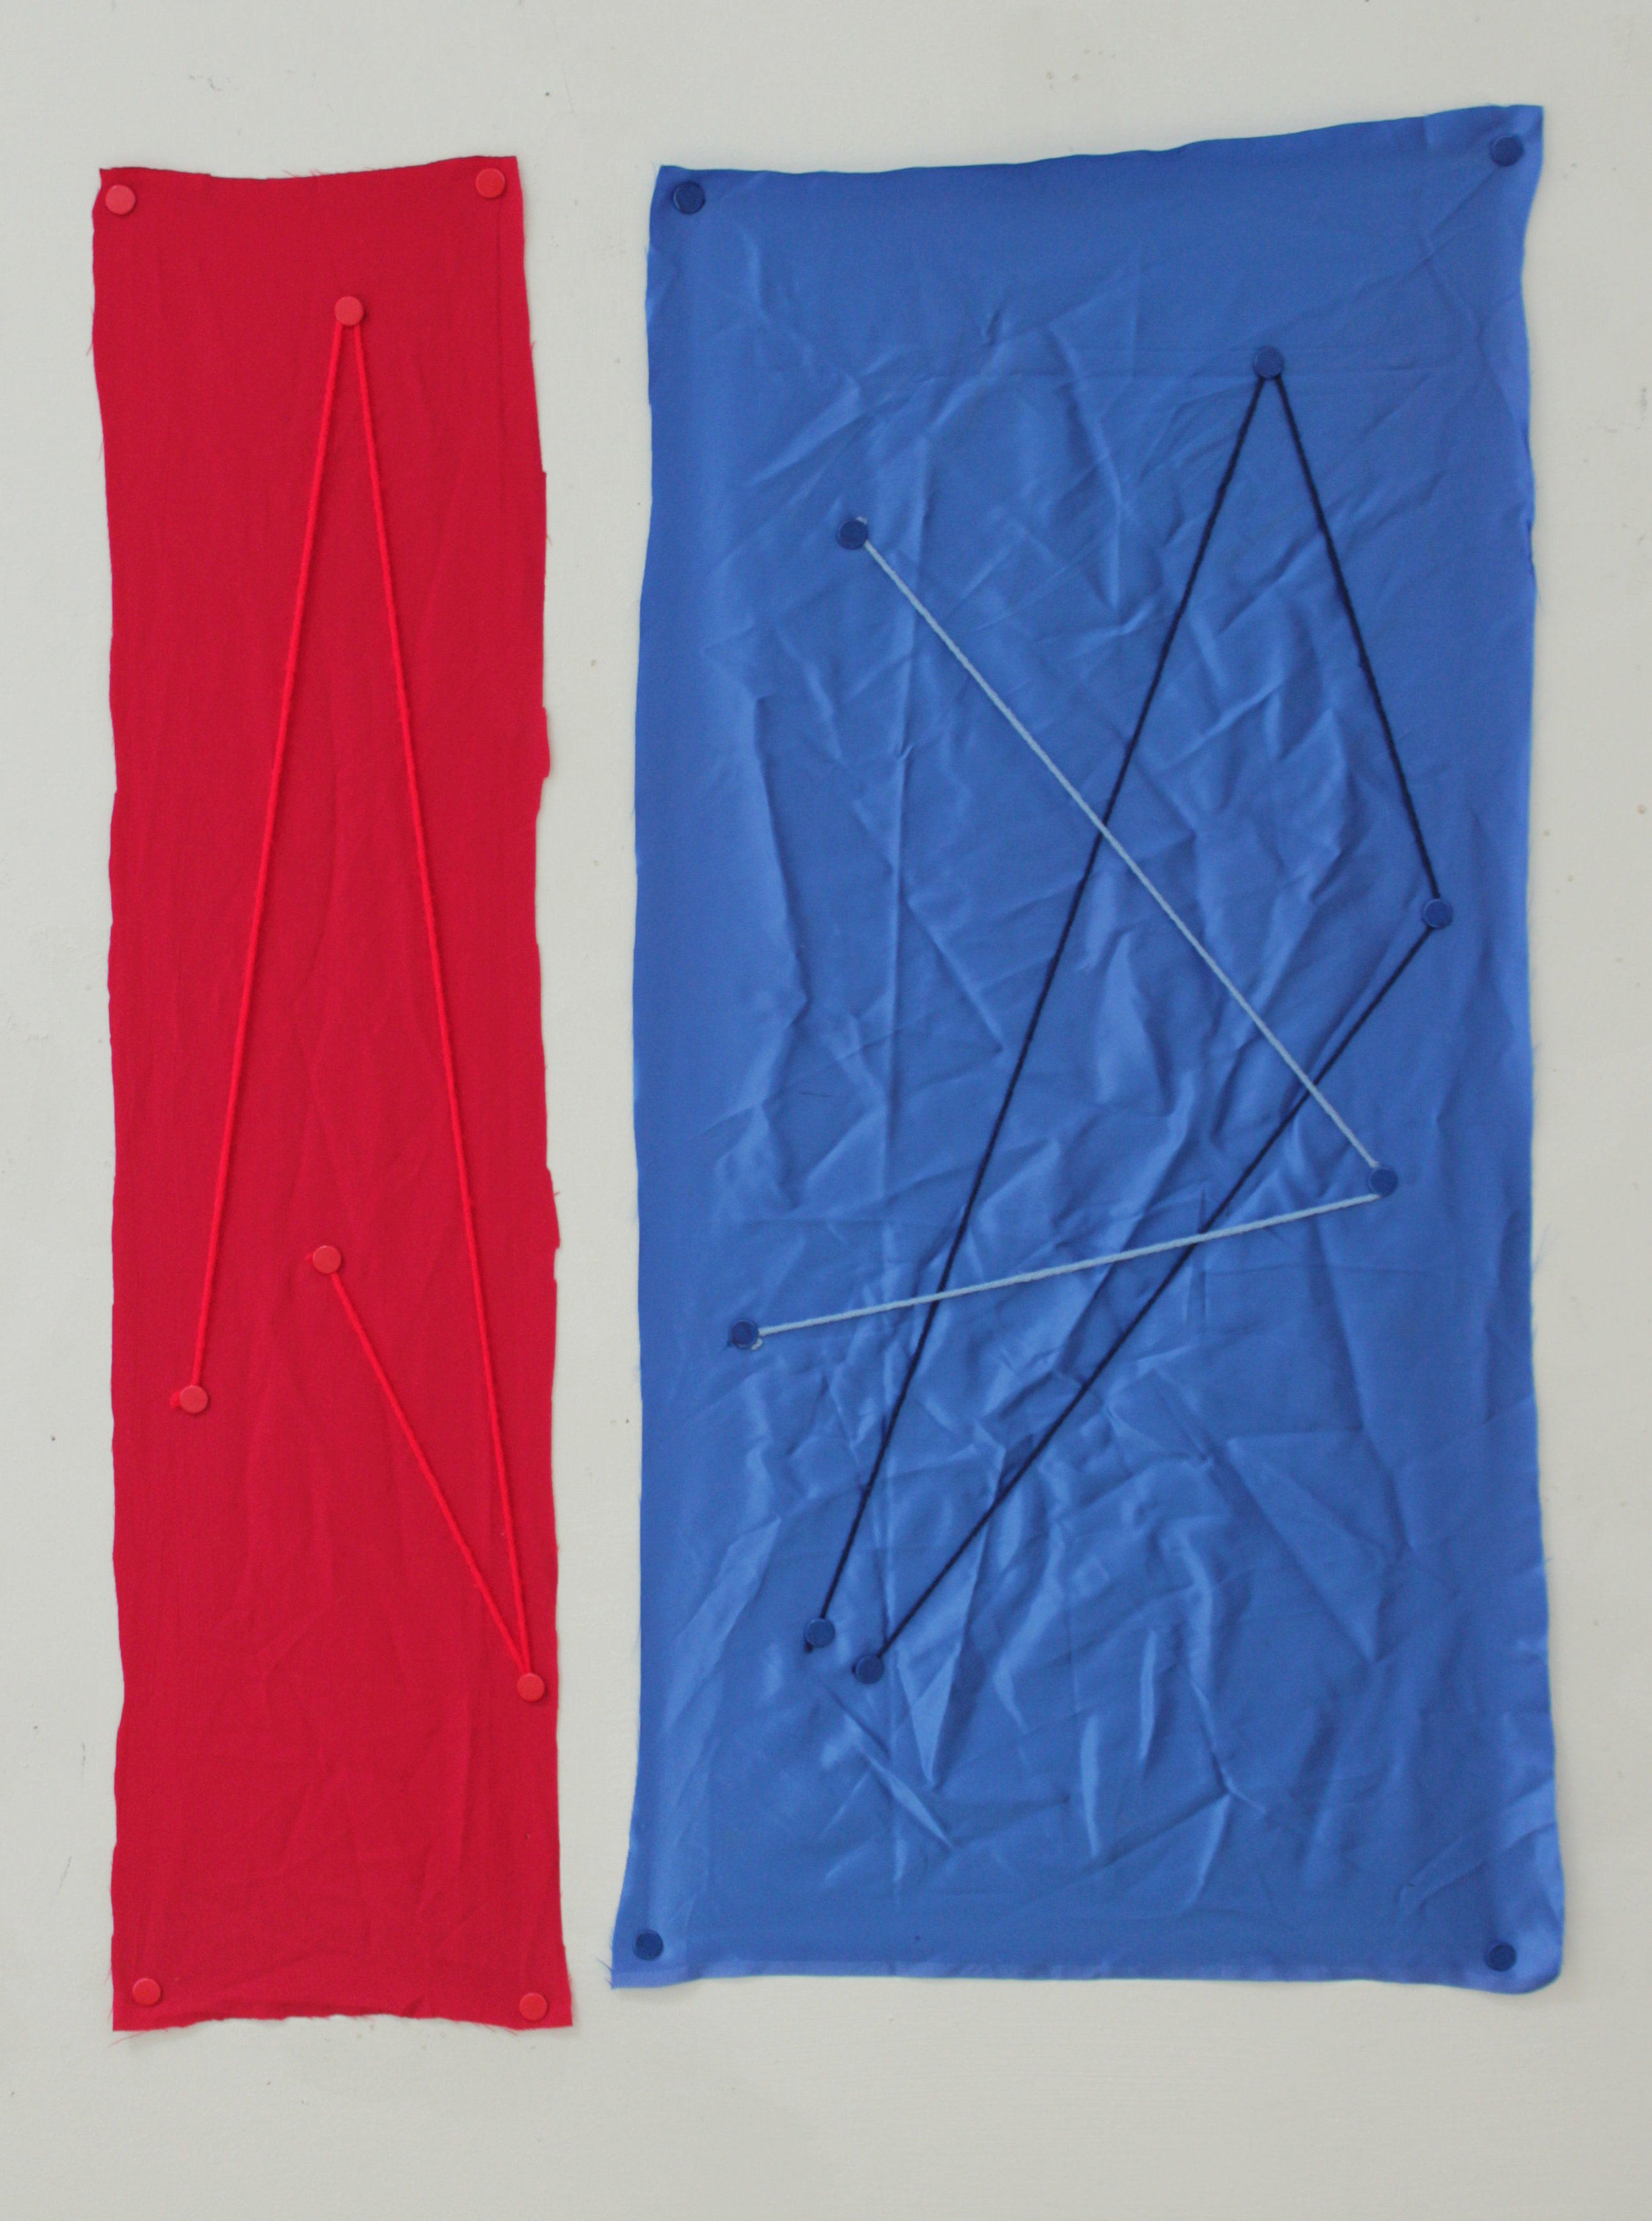 Three Point Series, Red and Blue